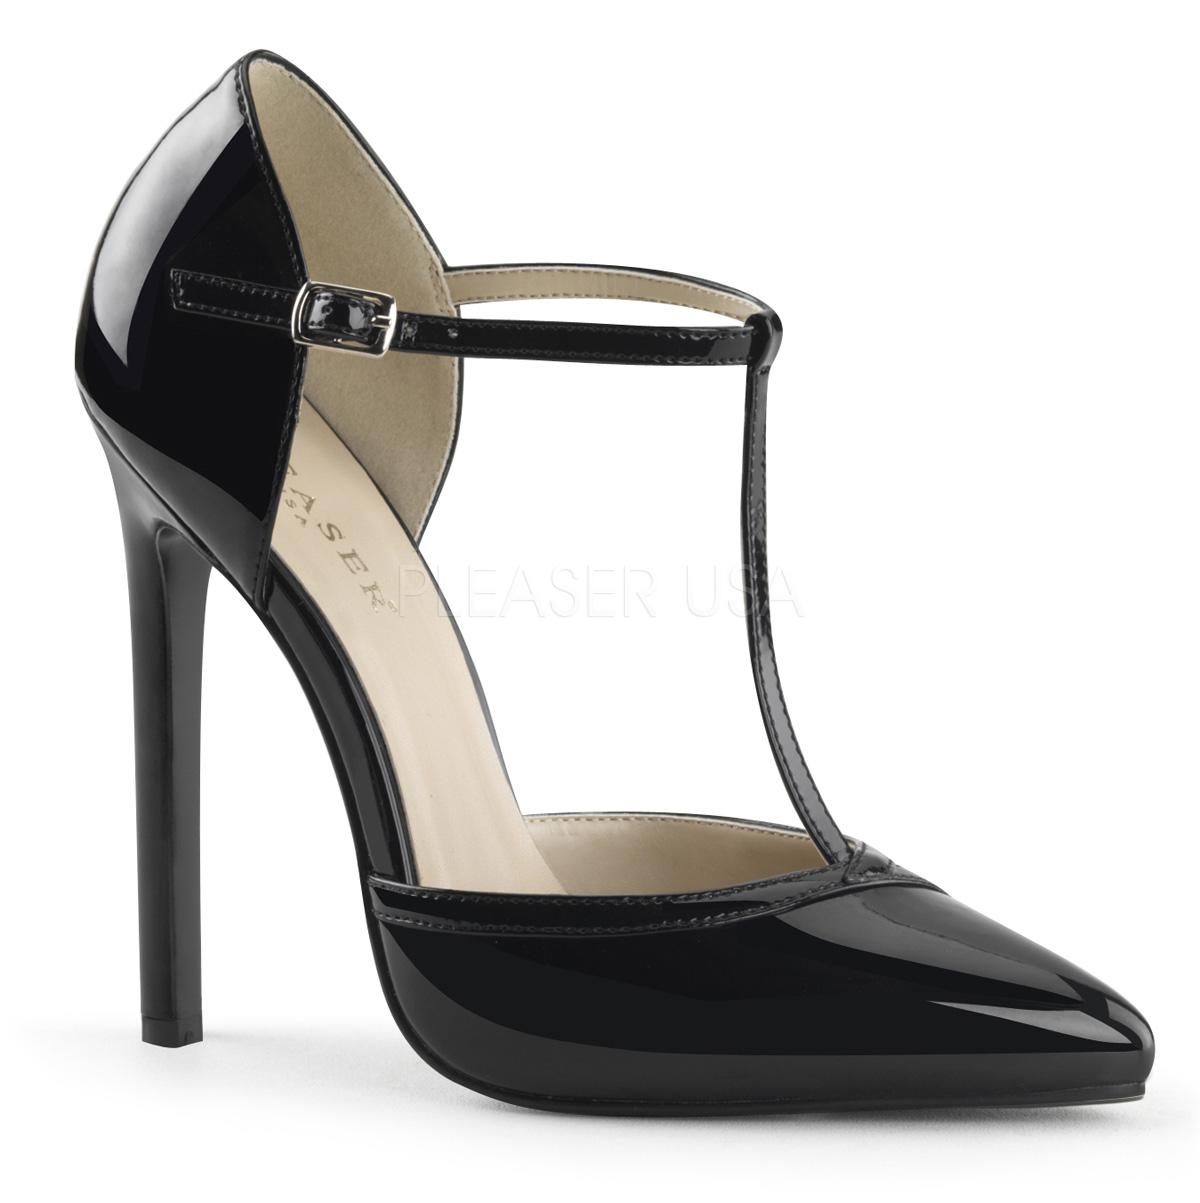 free shipping san francisco price reduced PLEASER 5-5 1/4 SEXY 27 HIGH HEEL STILETTO T BAR D'ORSAY COURT ...